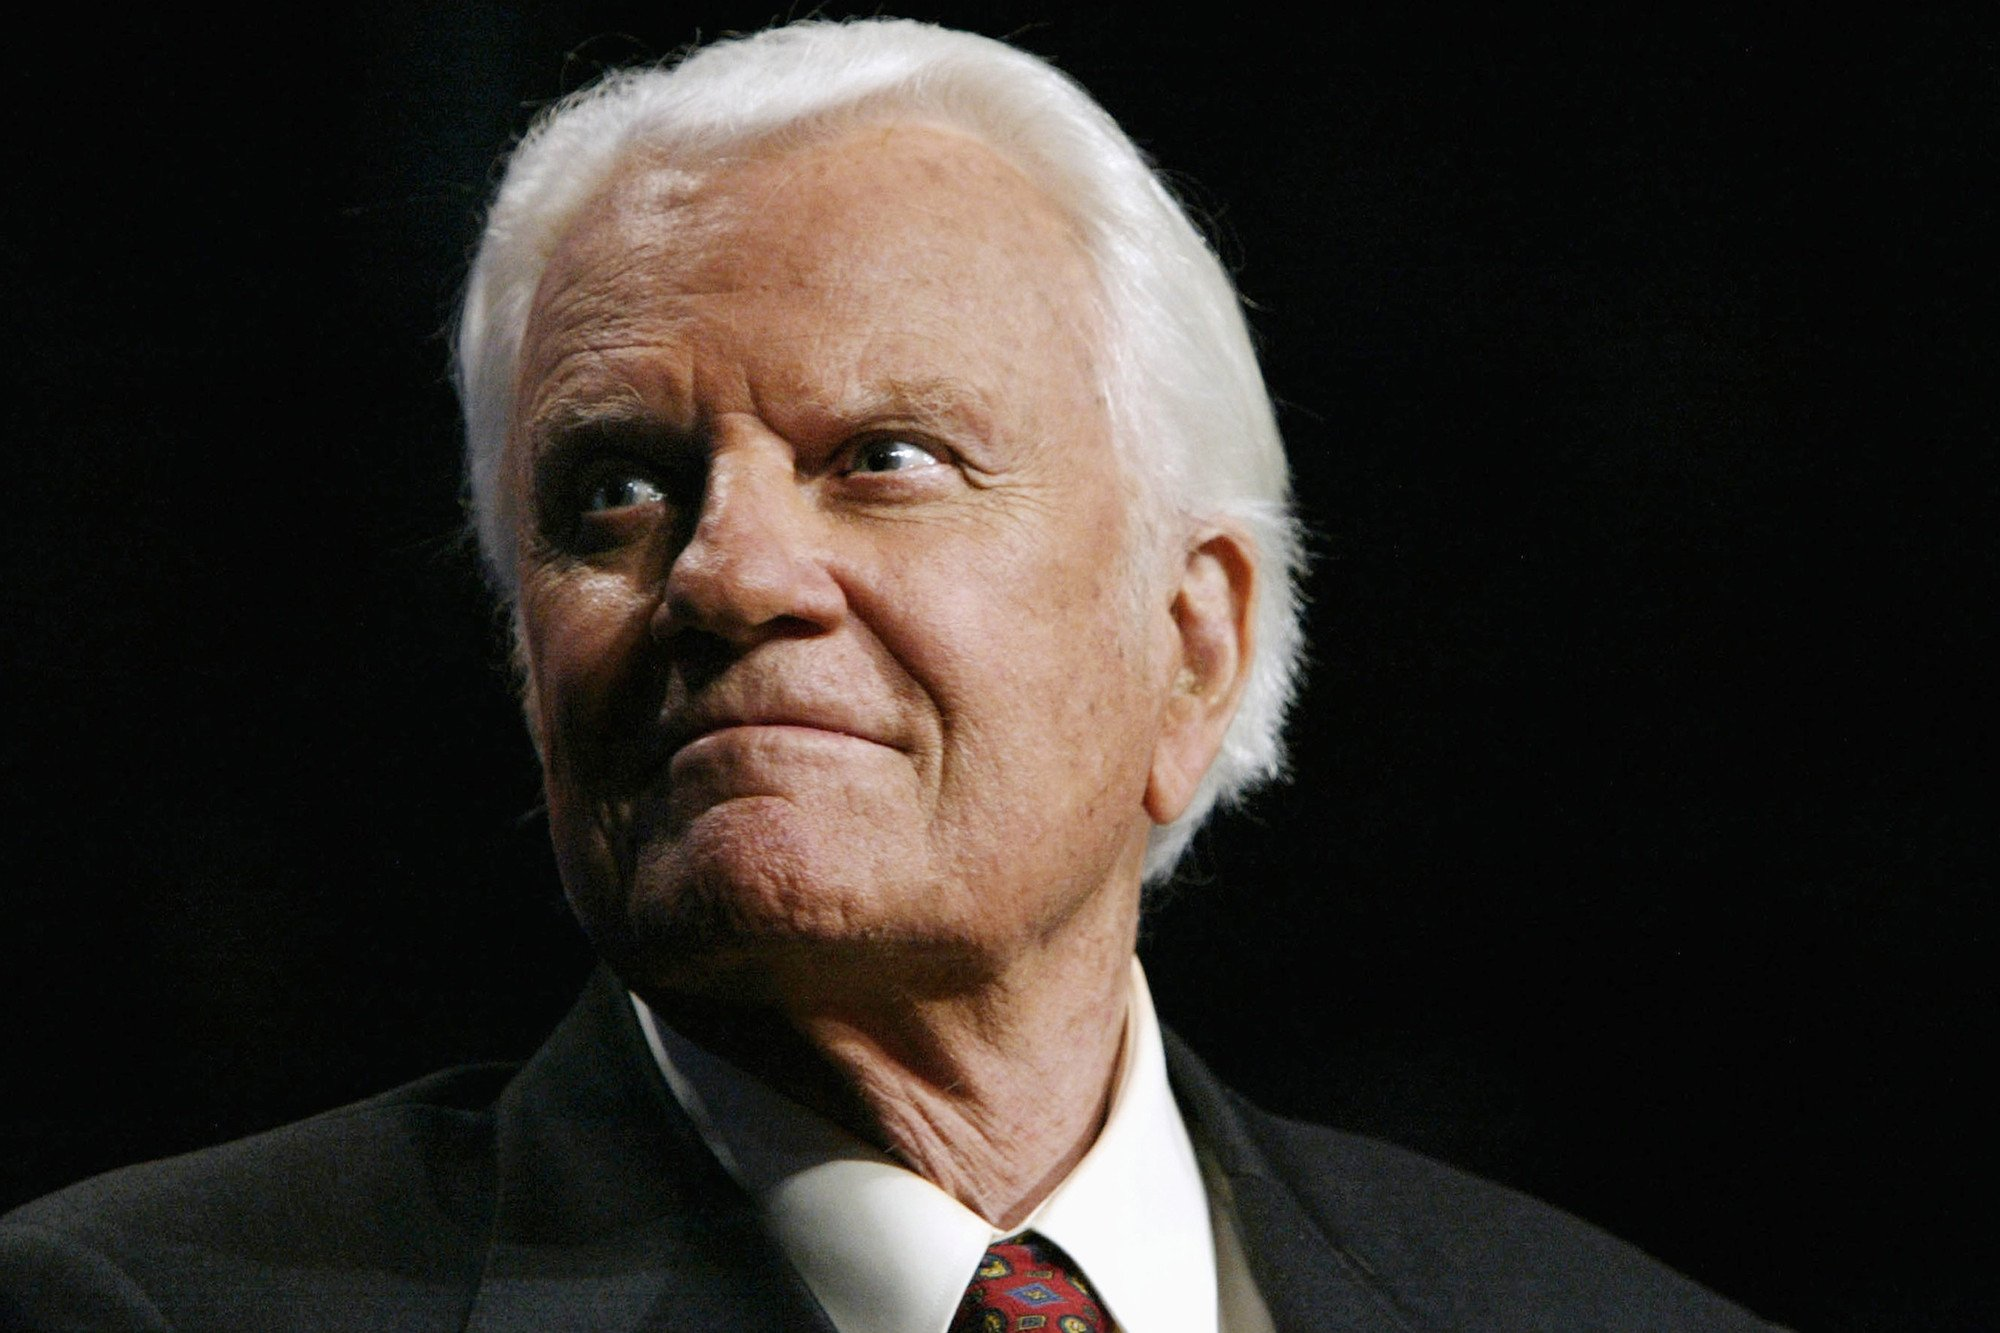 ee billy graham chaplains - HD2000×1333